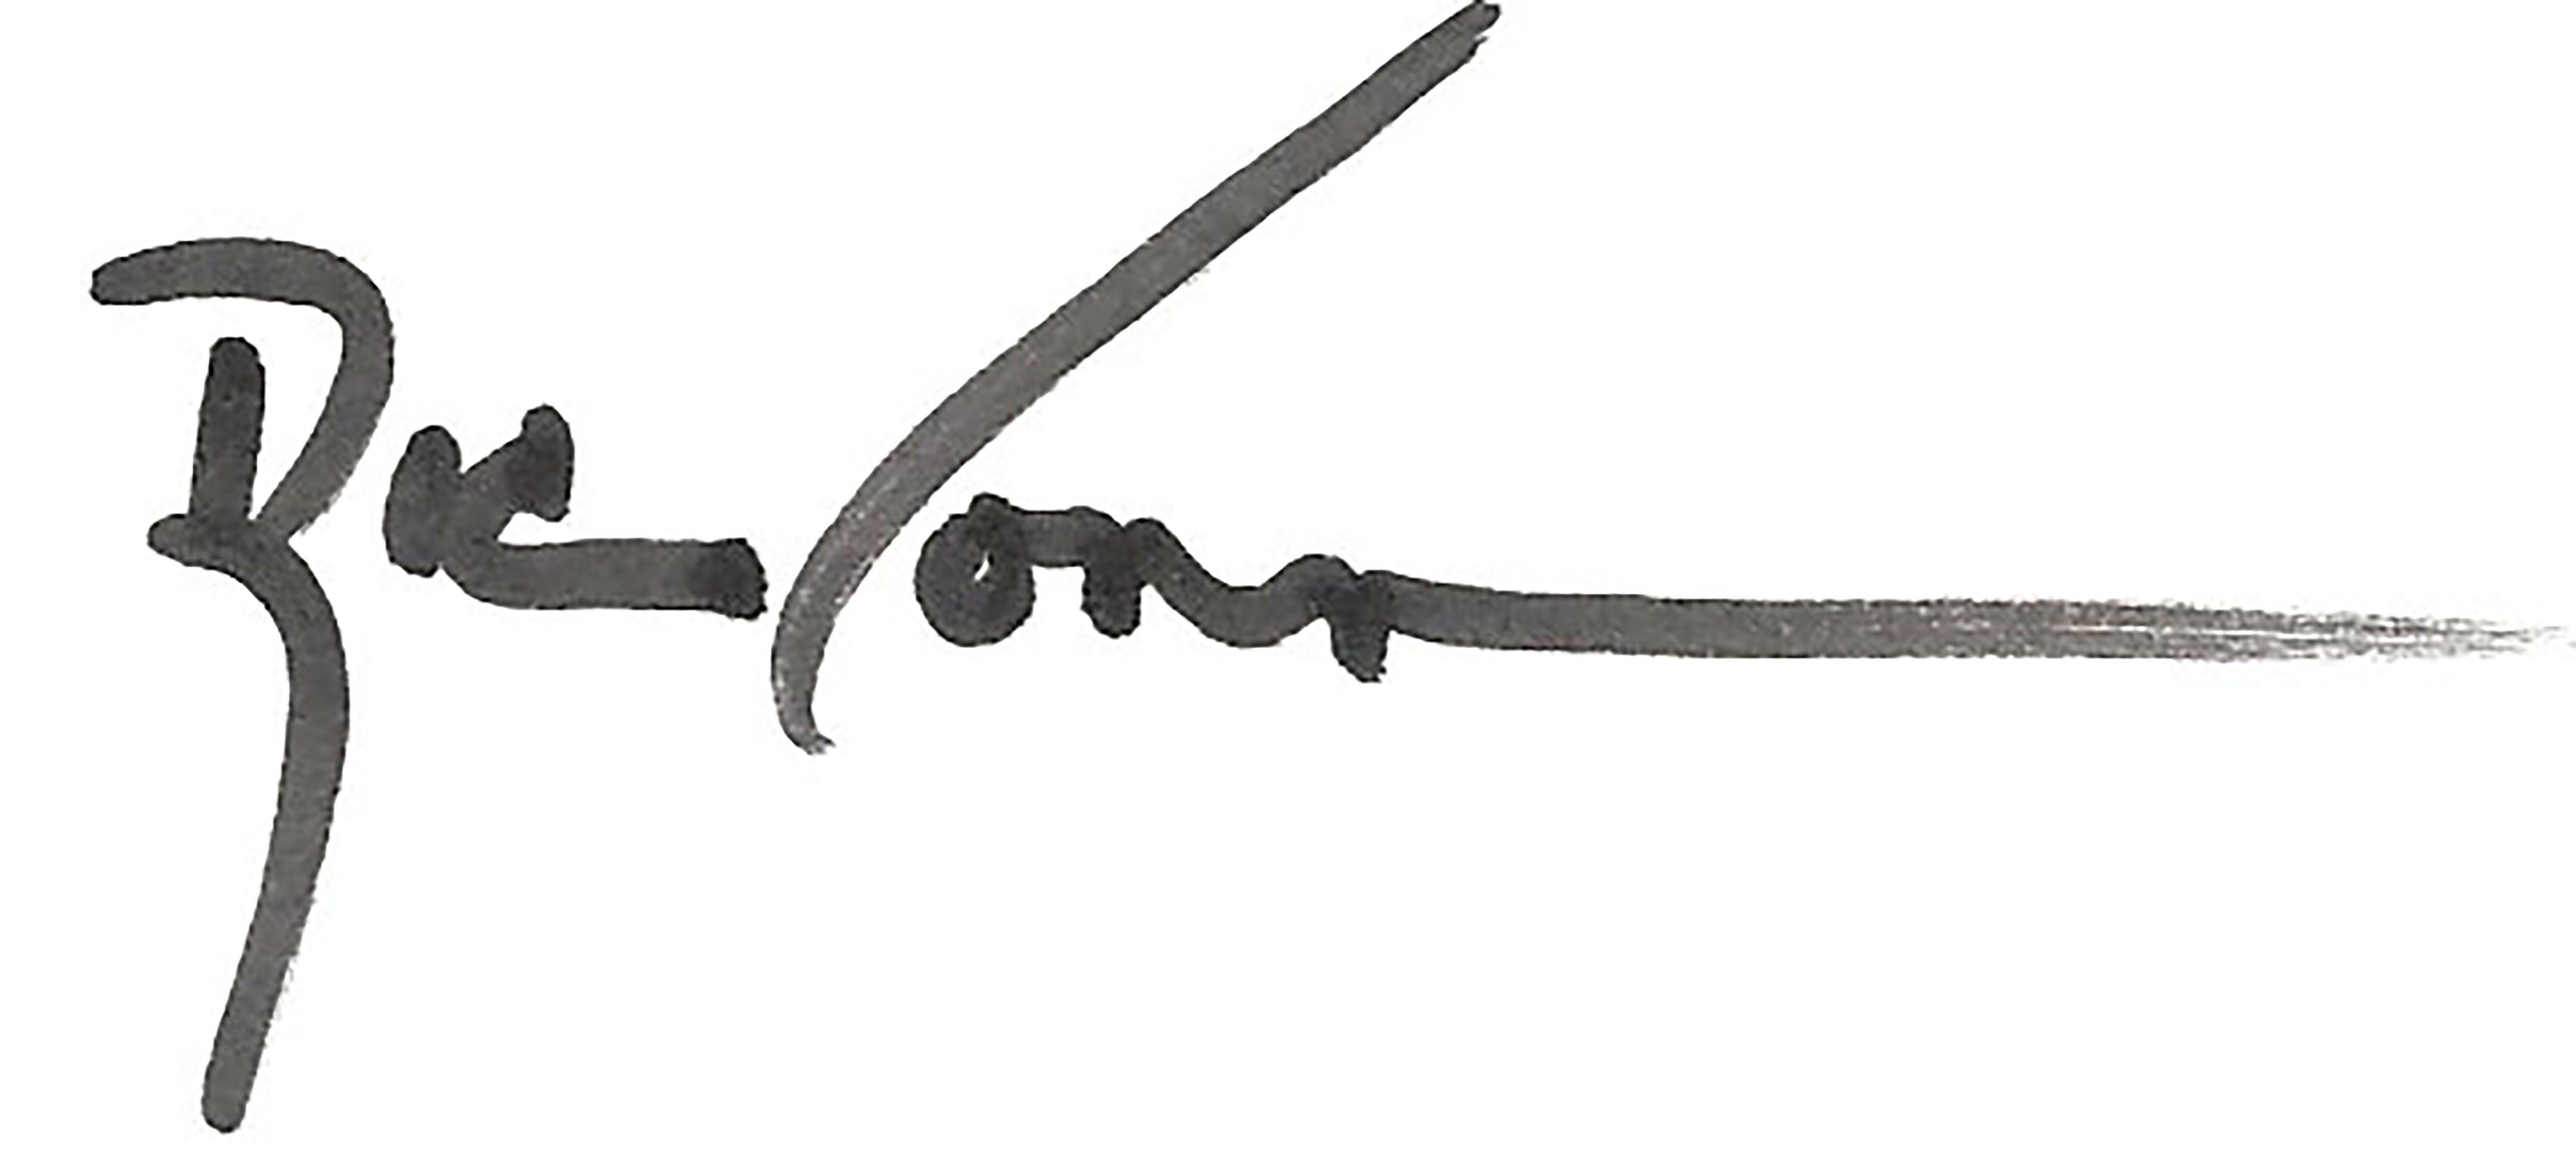 ric.conn.art's Signature